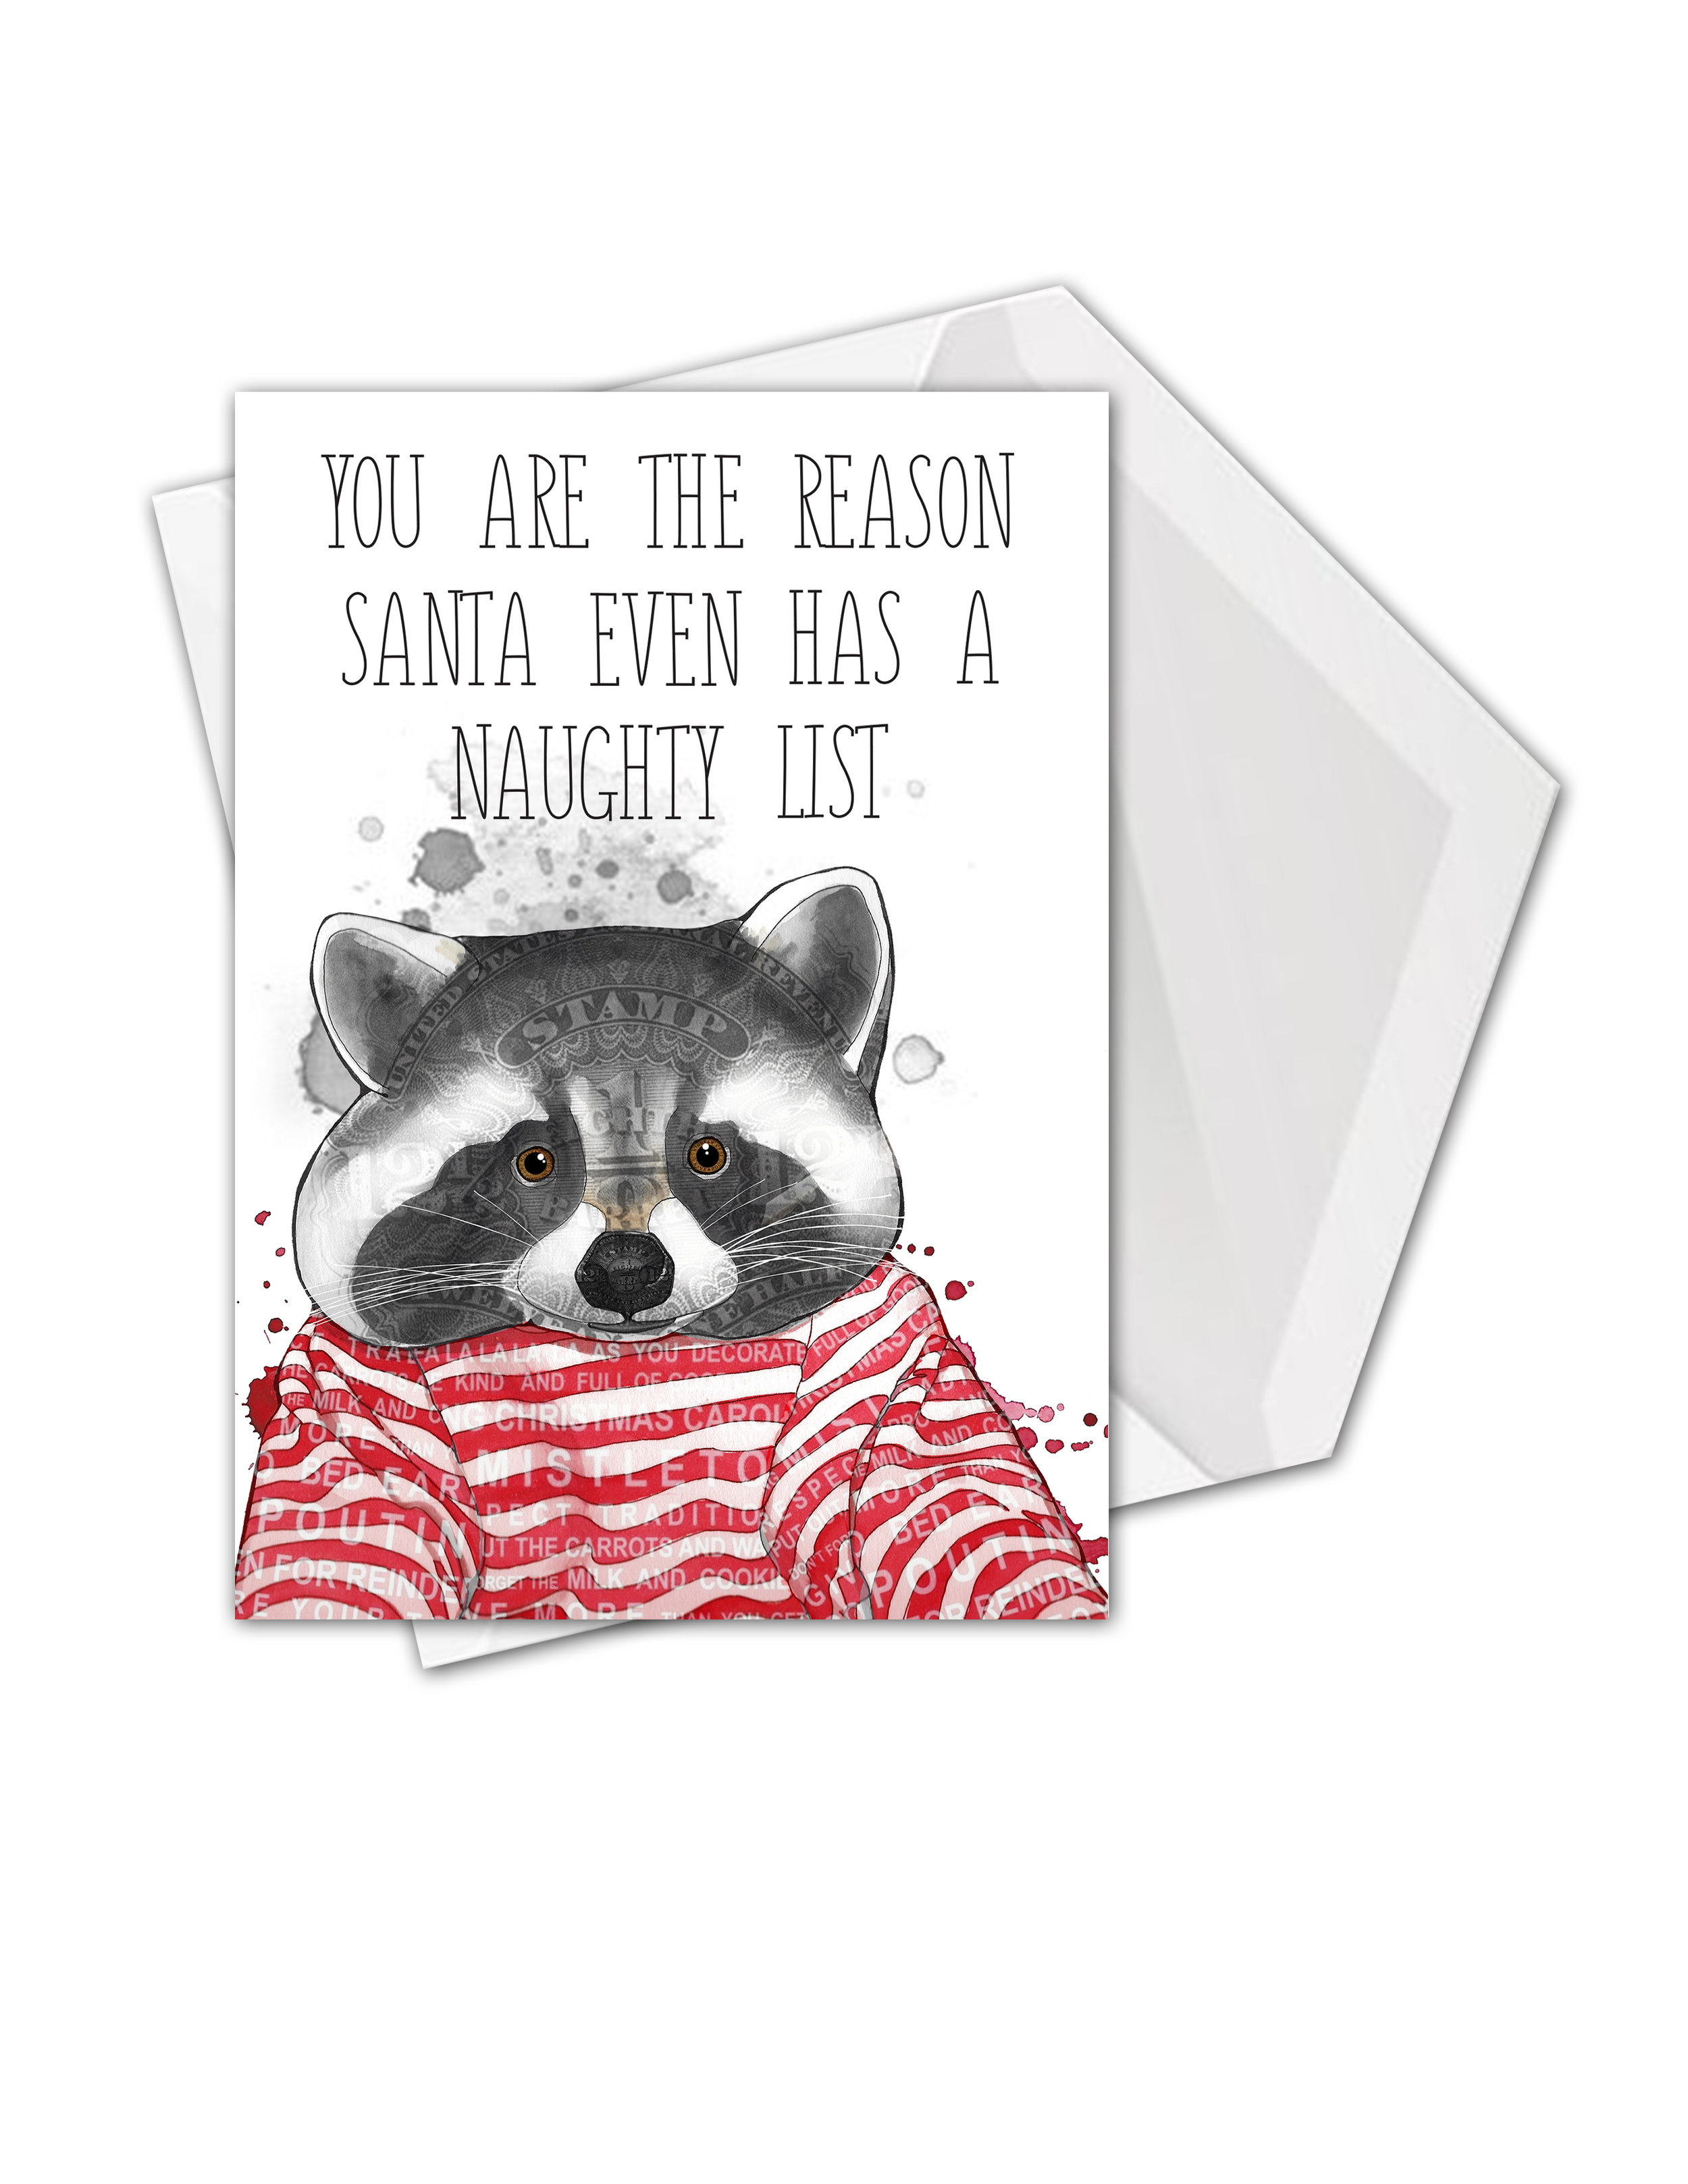 CA Raccoon naughty list card mock.jpg